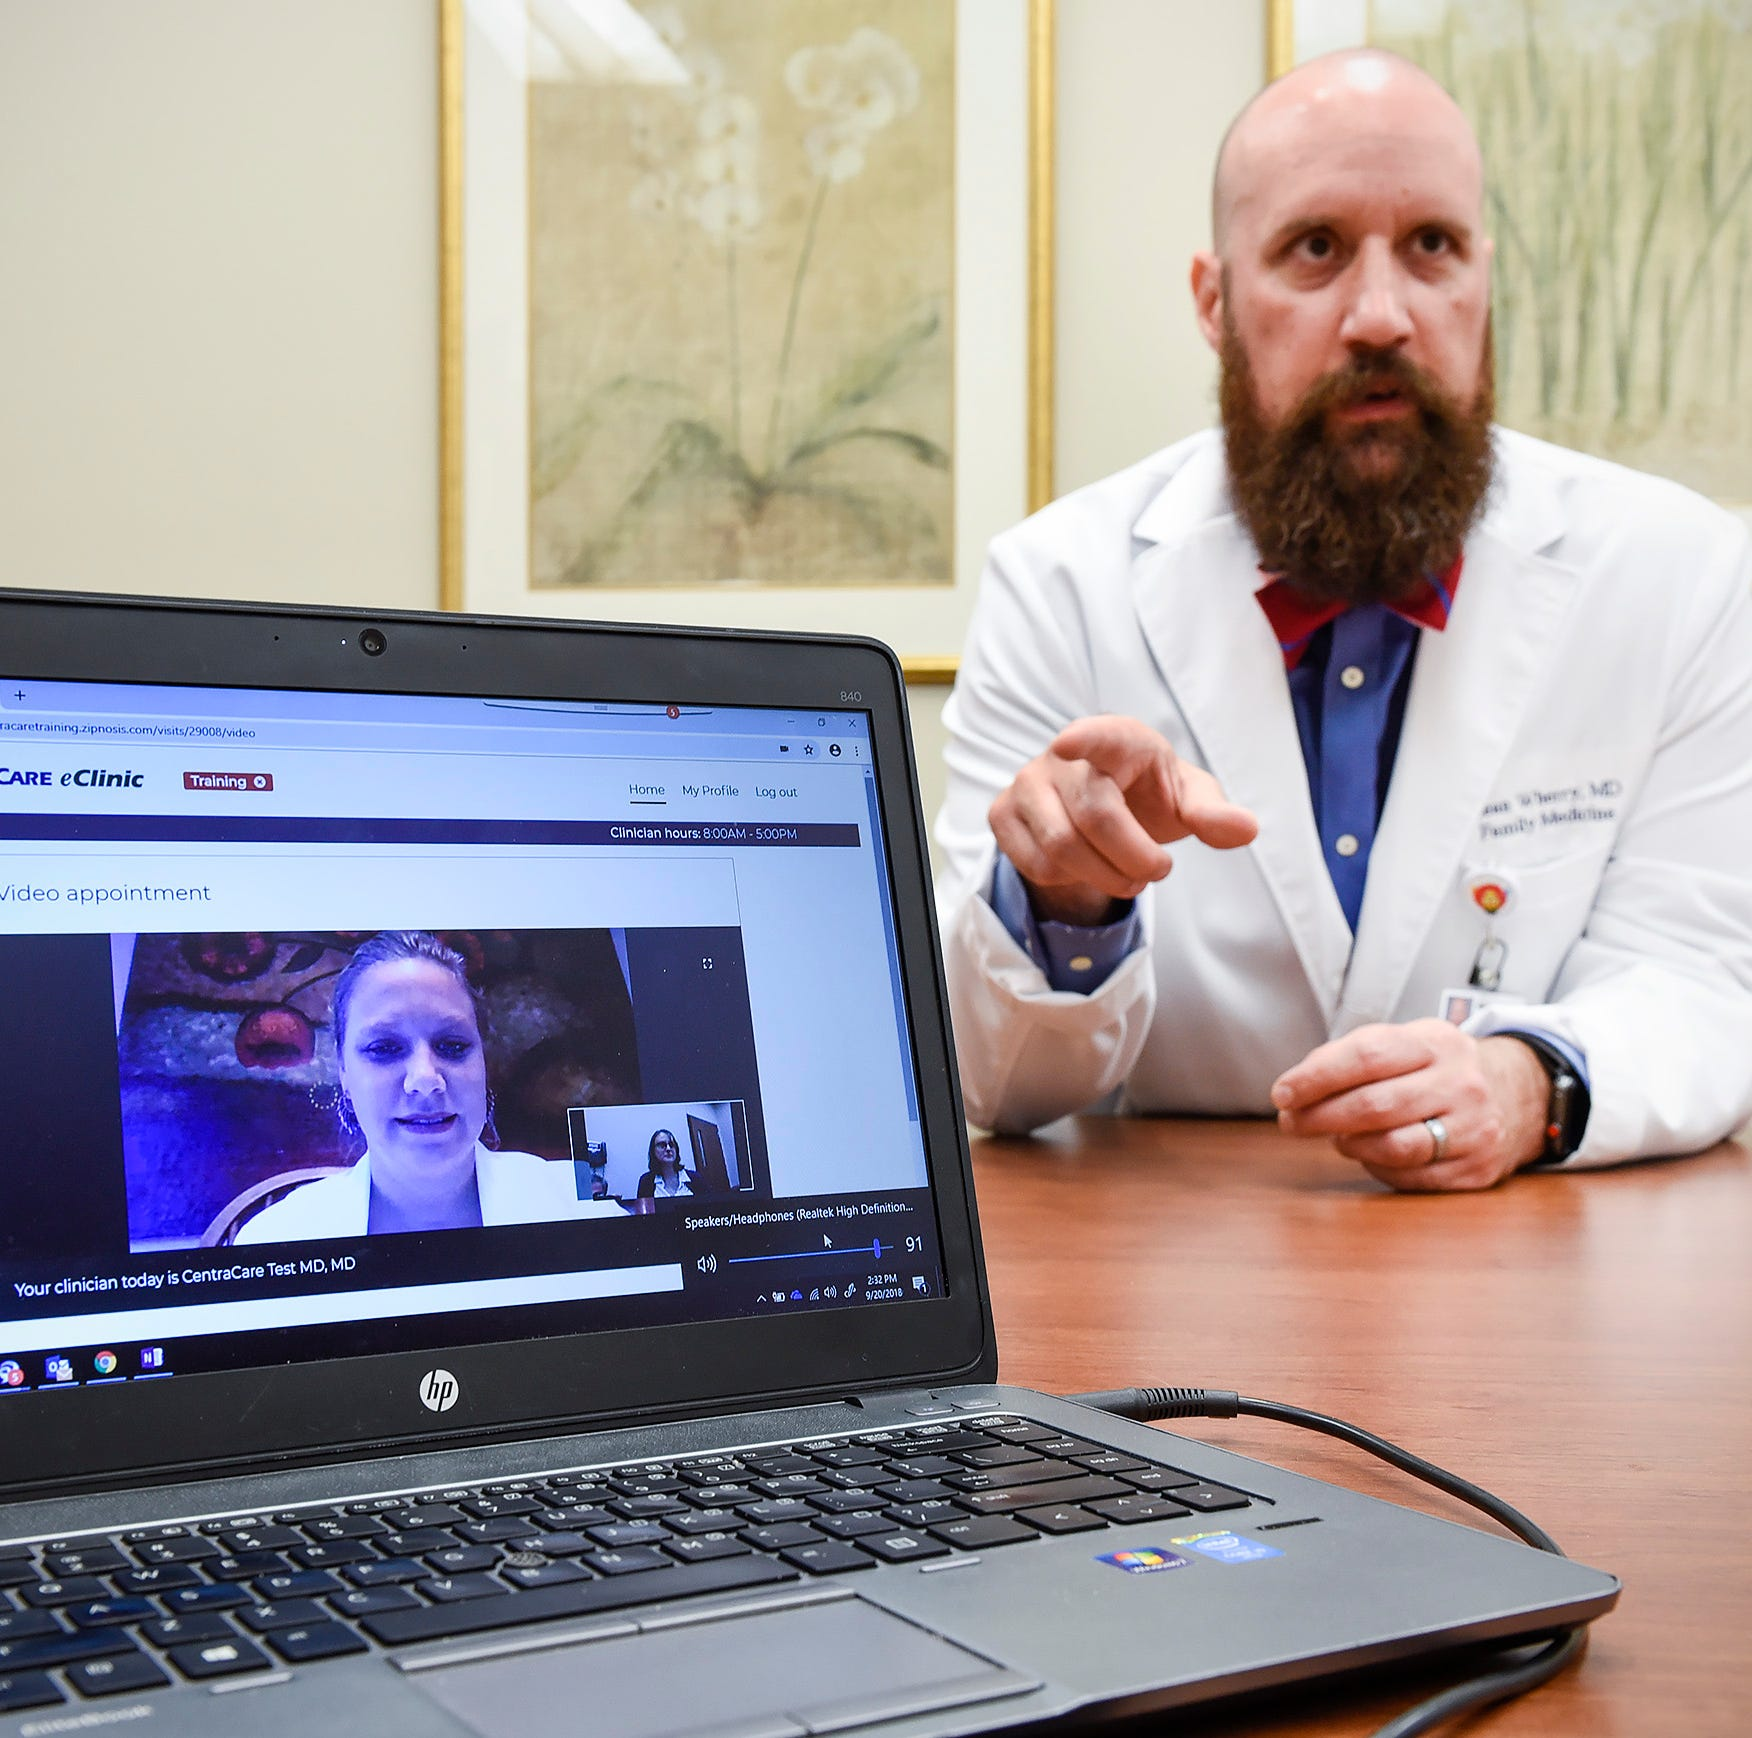 The new house call: CentraCare doctors treat patients via video-chat and phone